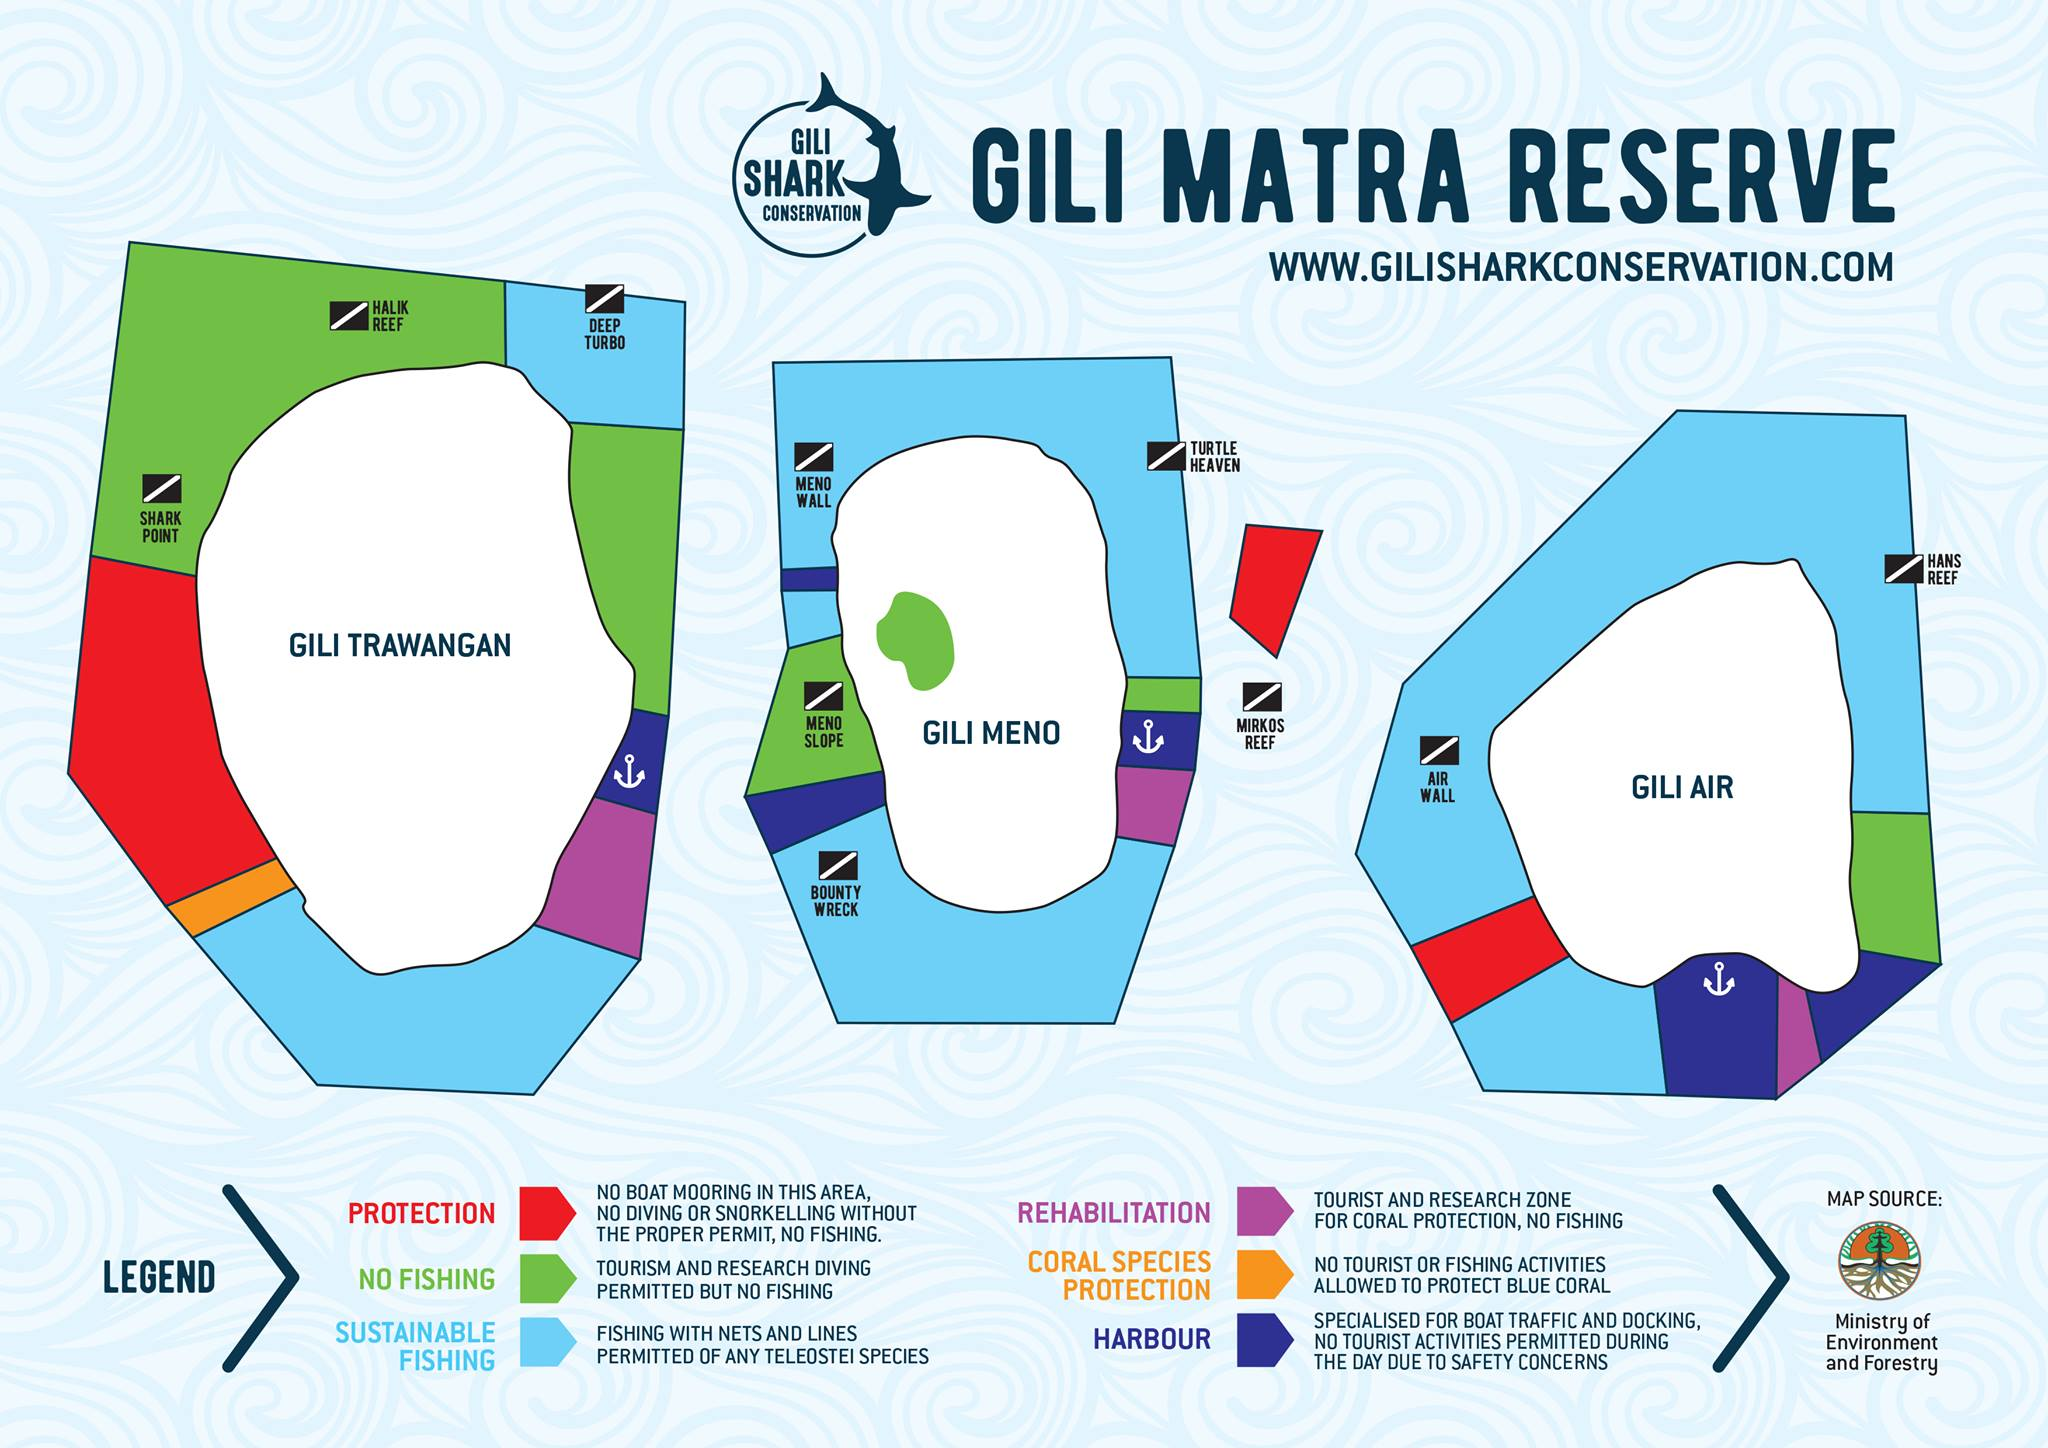 gili-matra-reserve-gili-shark-conservation high res